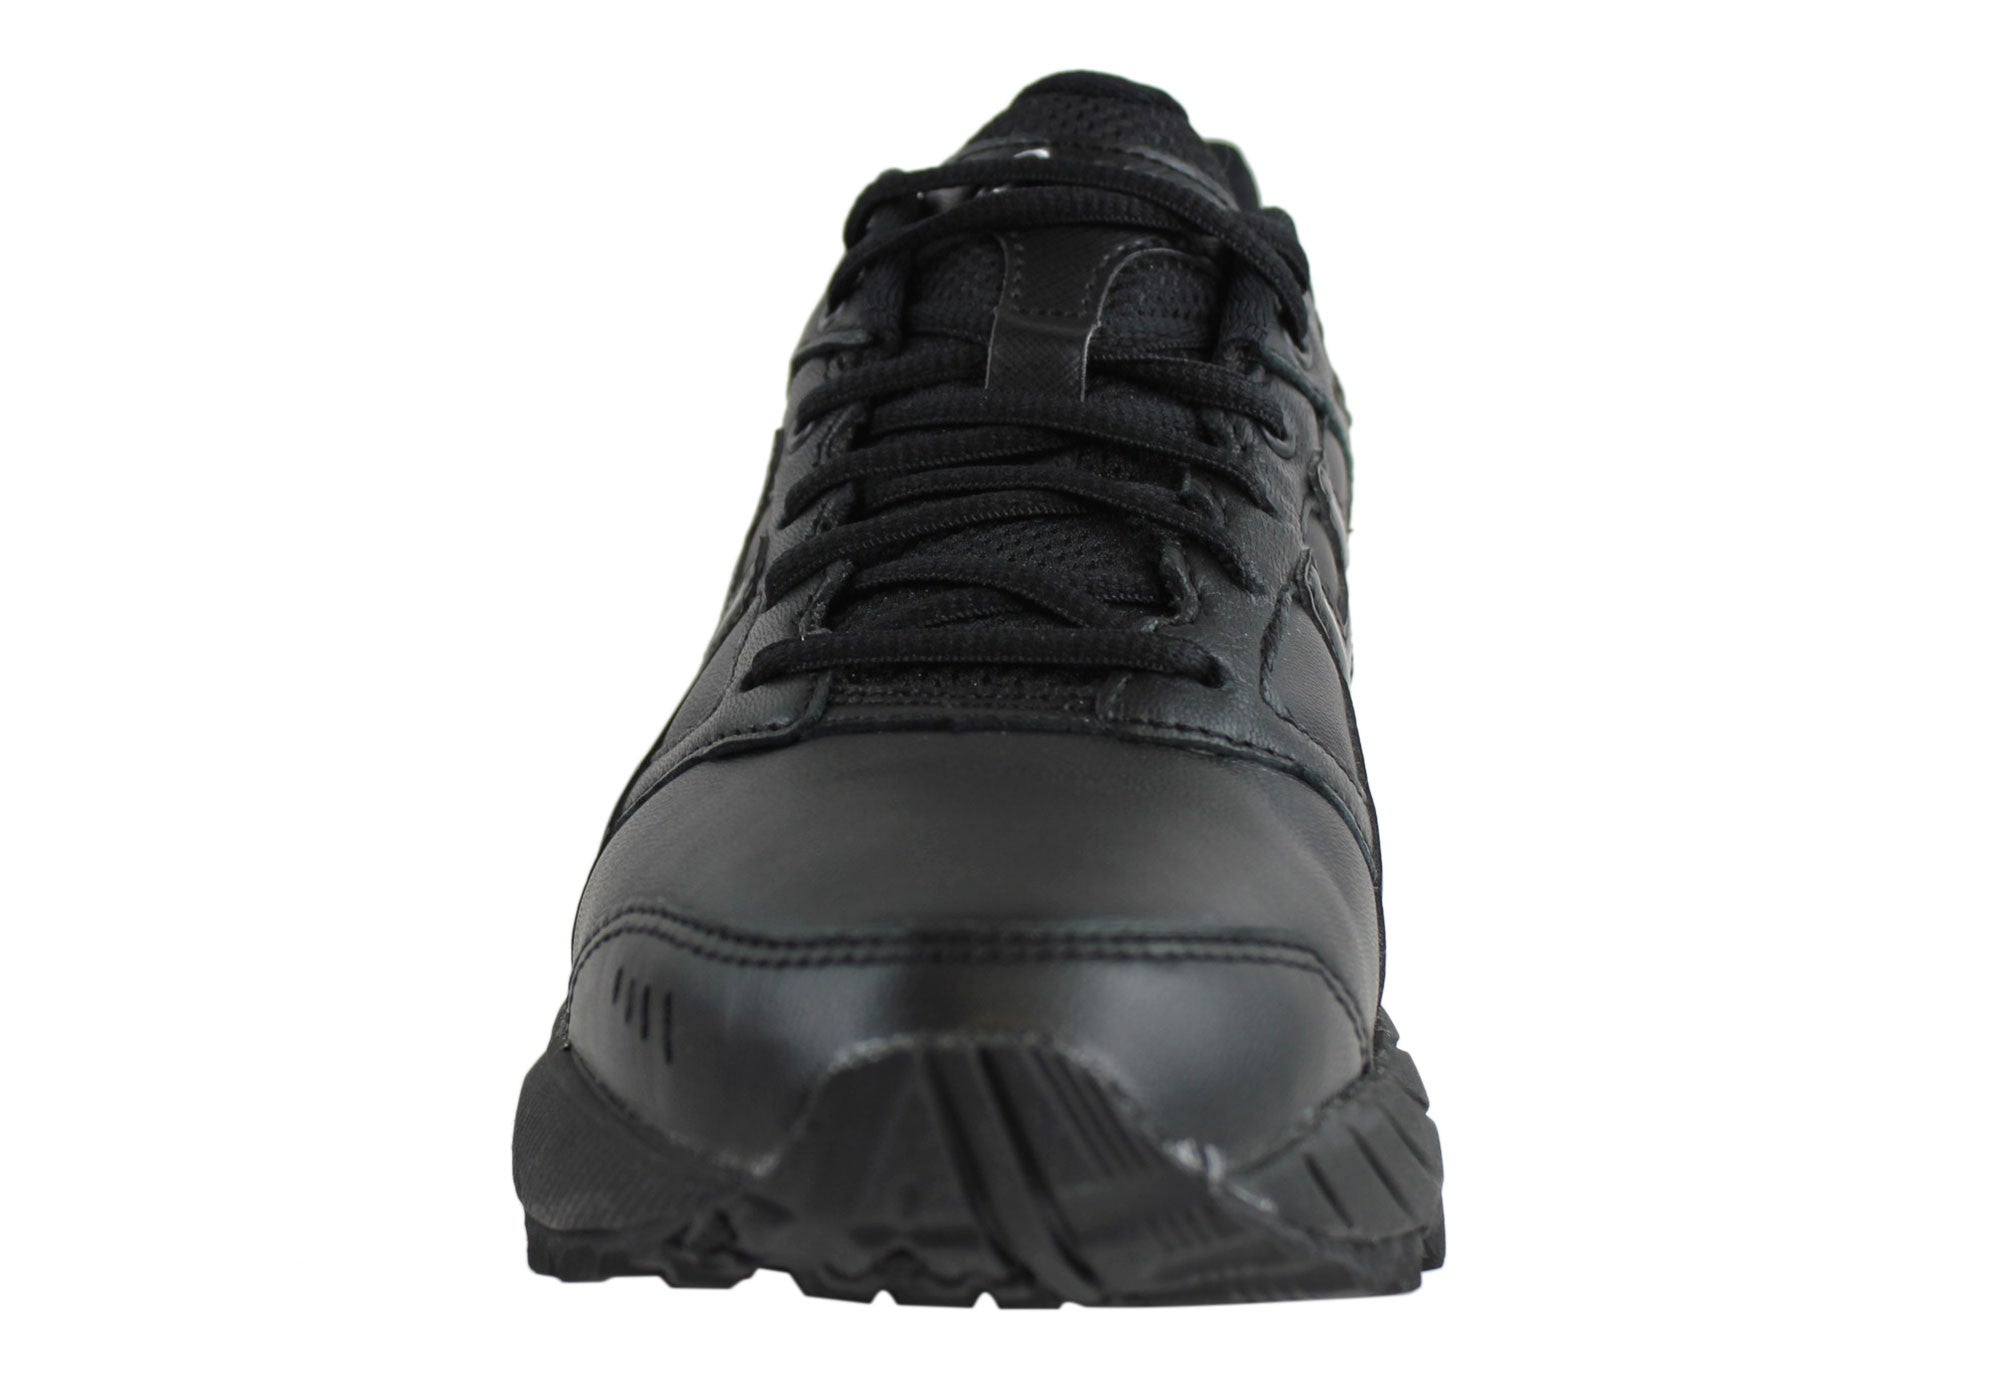 Details about NEW ASICS MENS LEATHER GEL FOUNDATION WALKER 3 (4E EXTRA WIDE WIDTH)